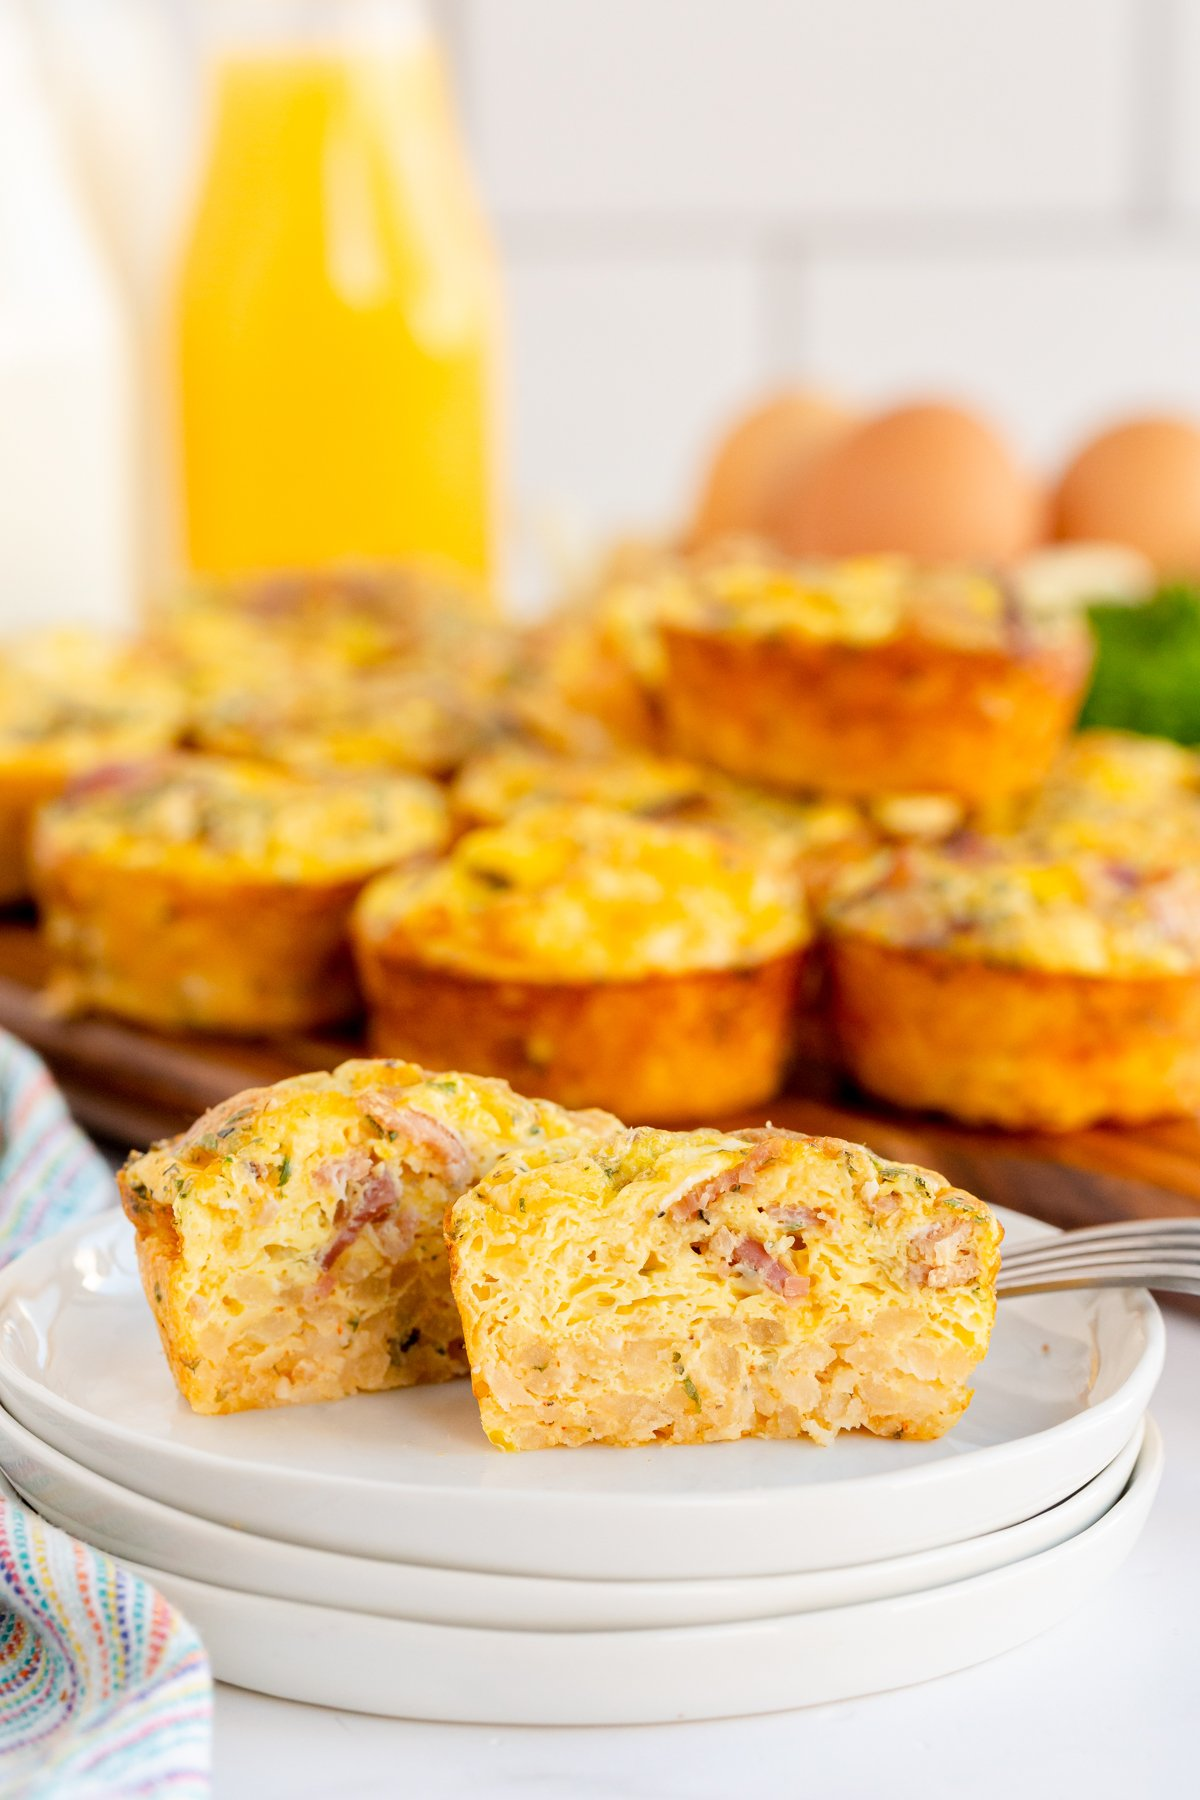 breakfast muffins on a white plate cut in half